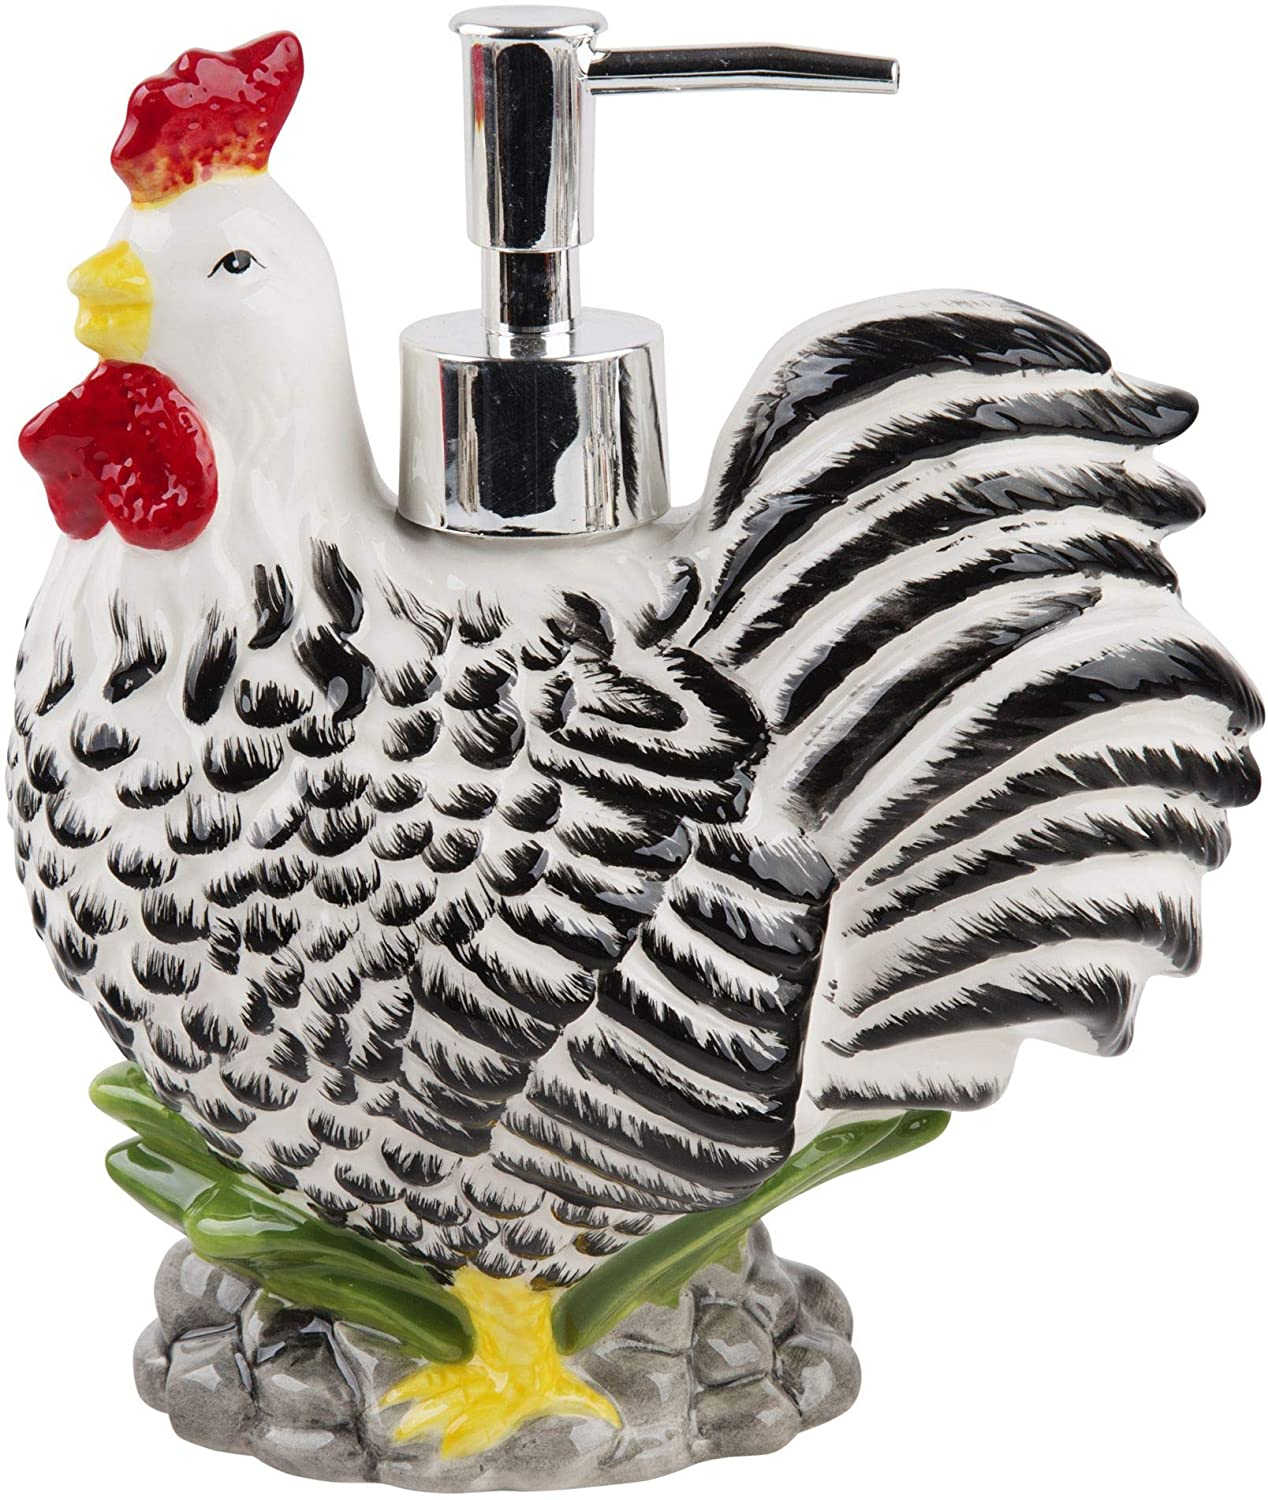 Home Essentials Ceramic Rooster Shaped Soap Dispenser- Lotion Dispenser for Kitchen or Bathroom Countertops